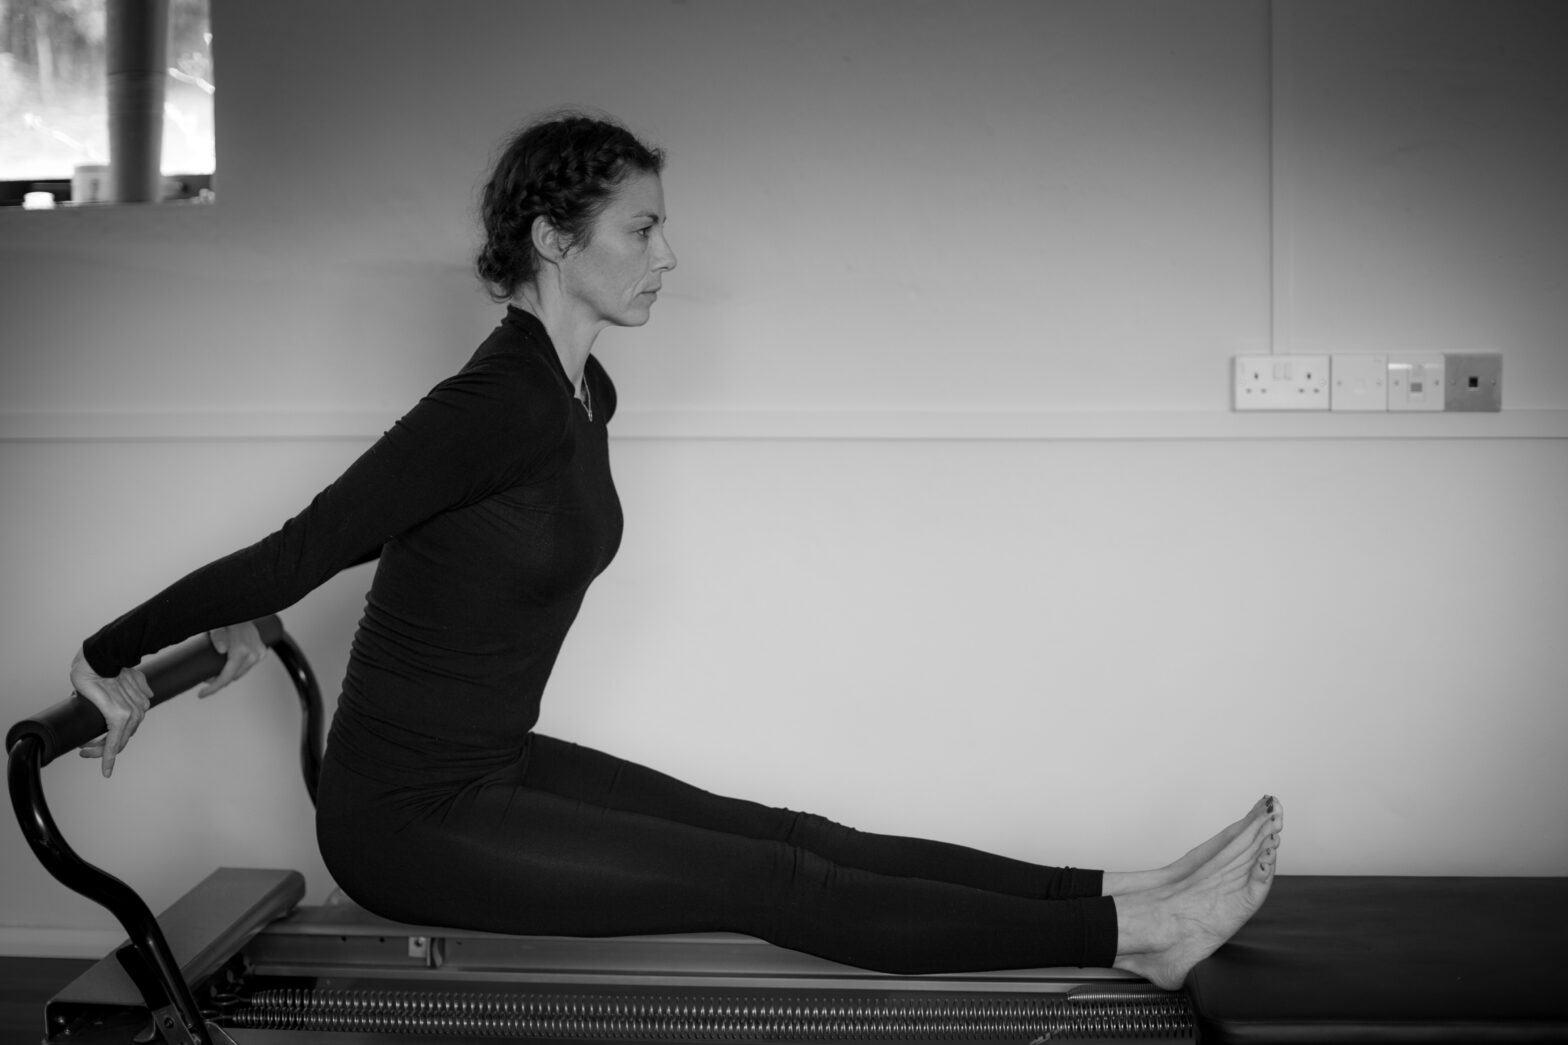 Workout on the reformer